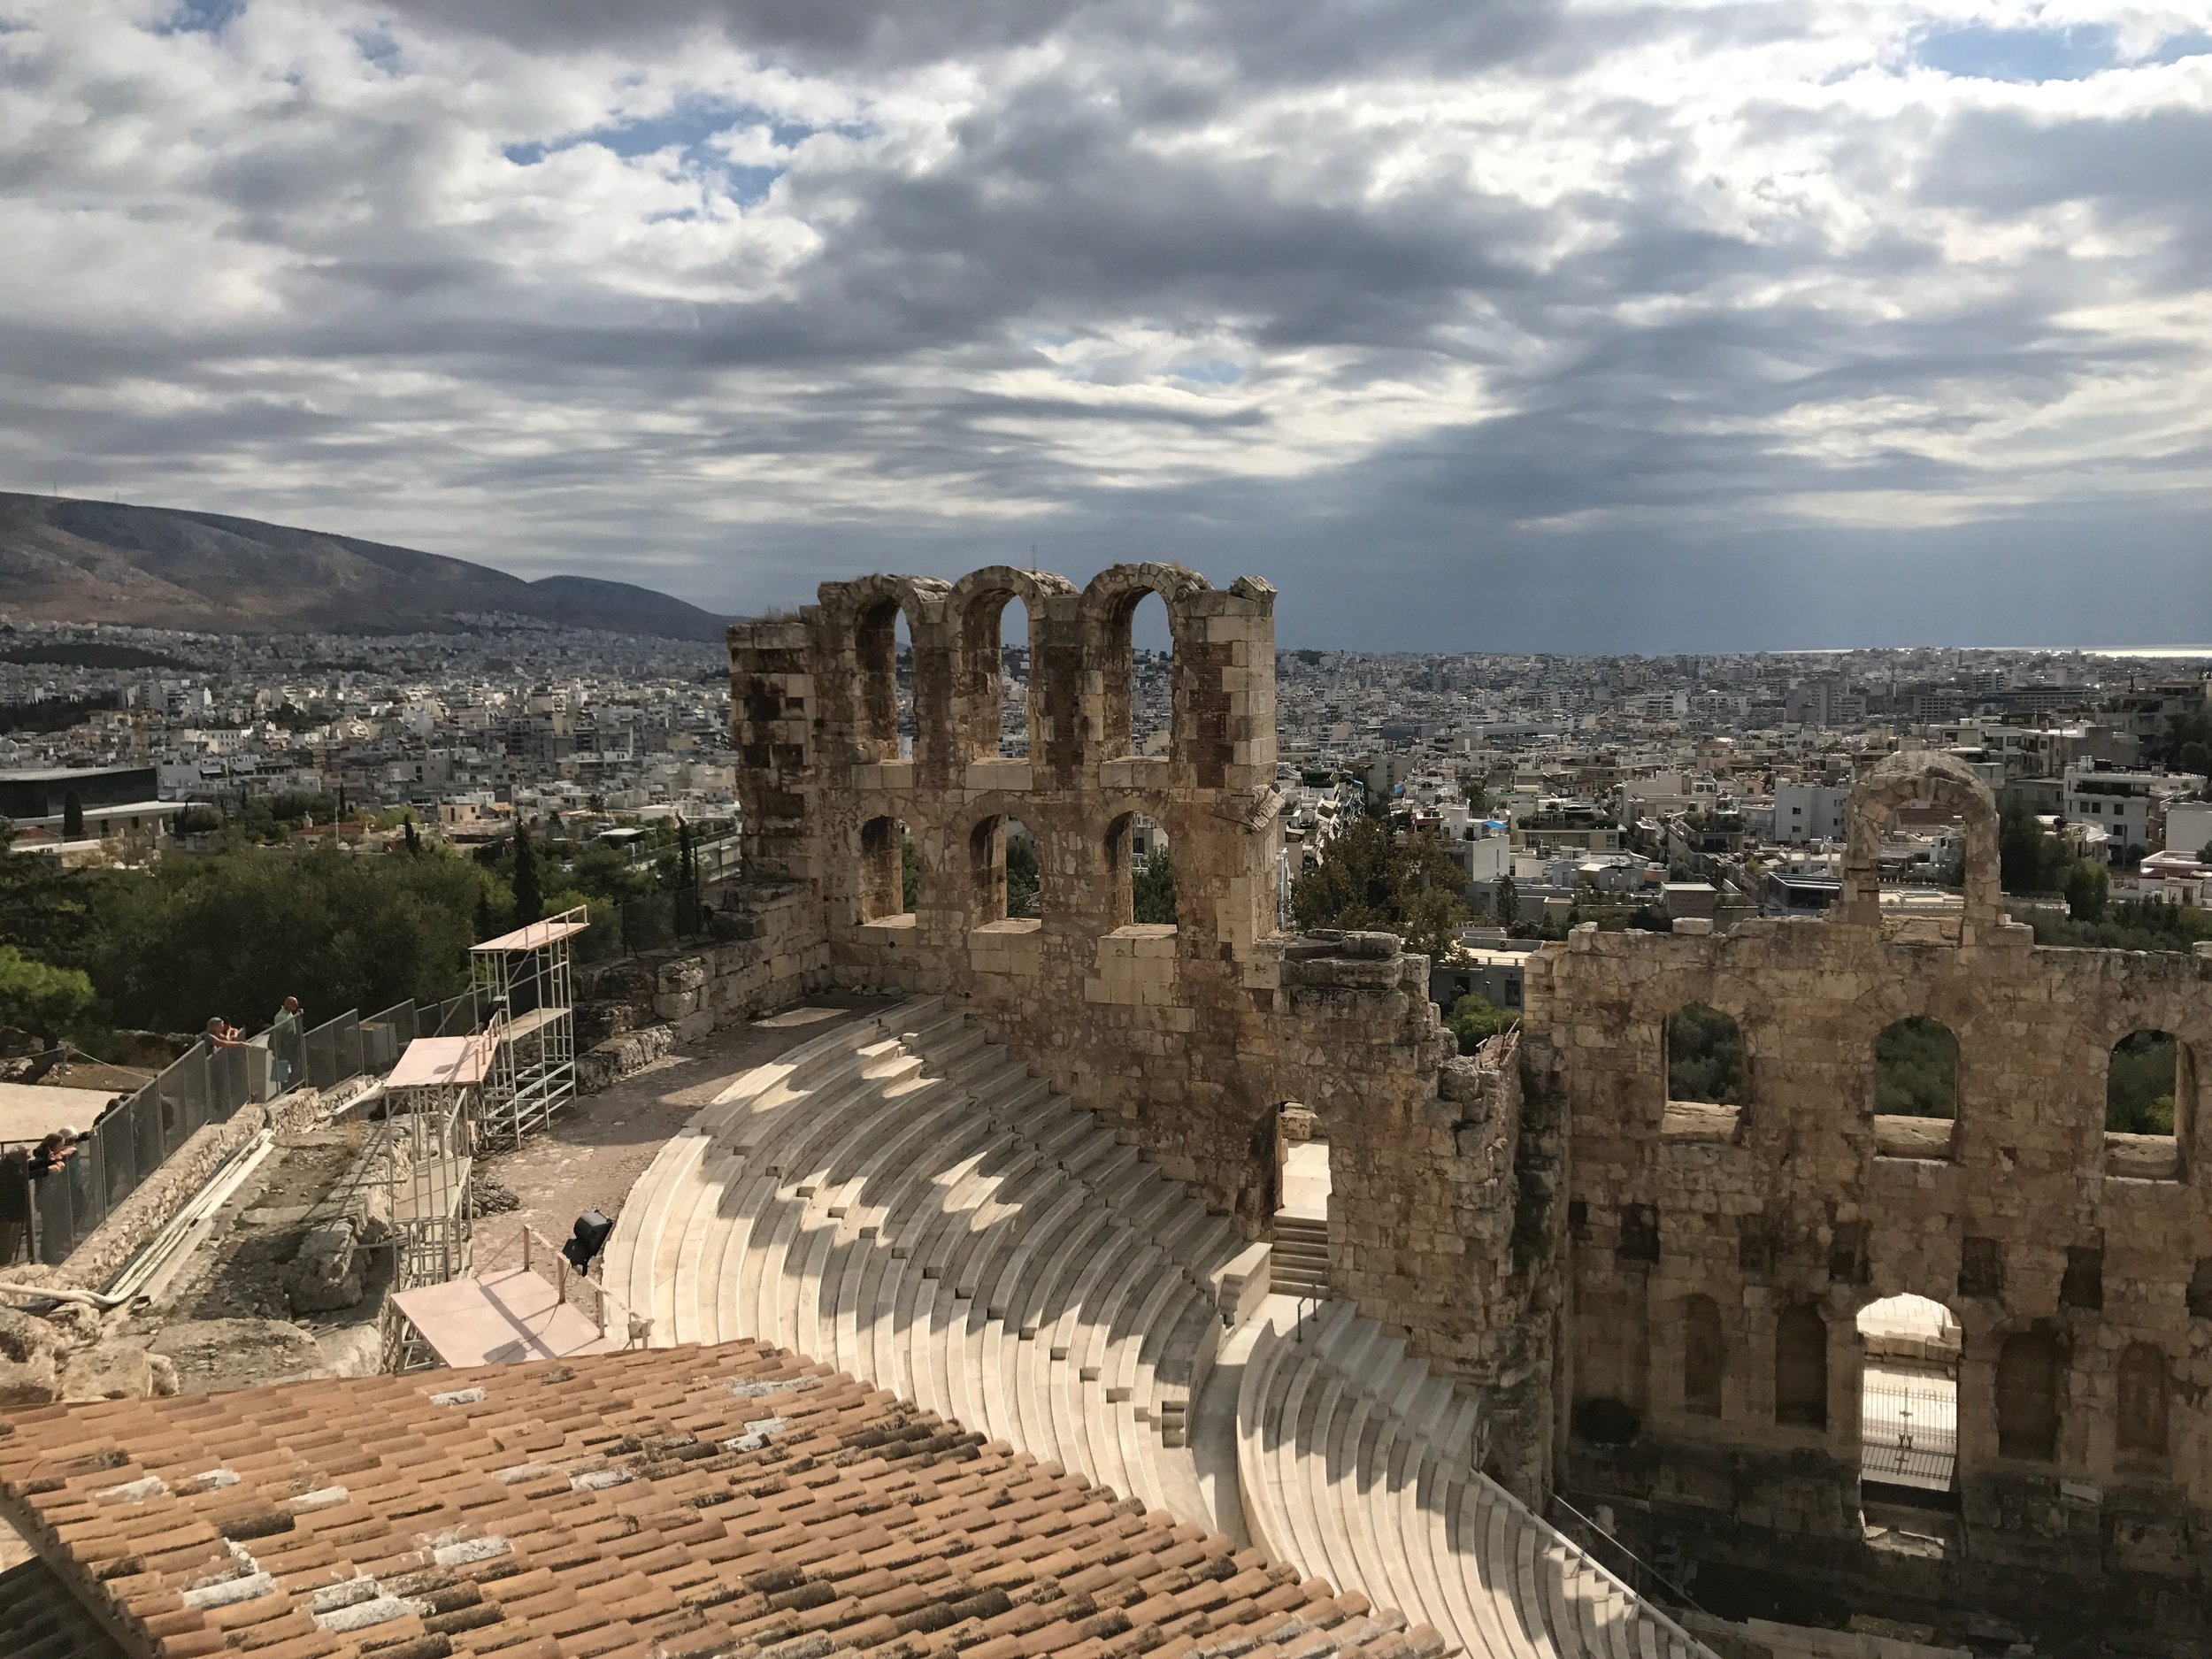 Amphitheater and View of the City